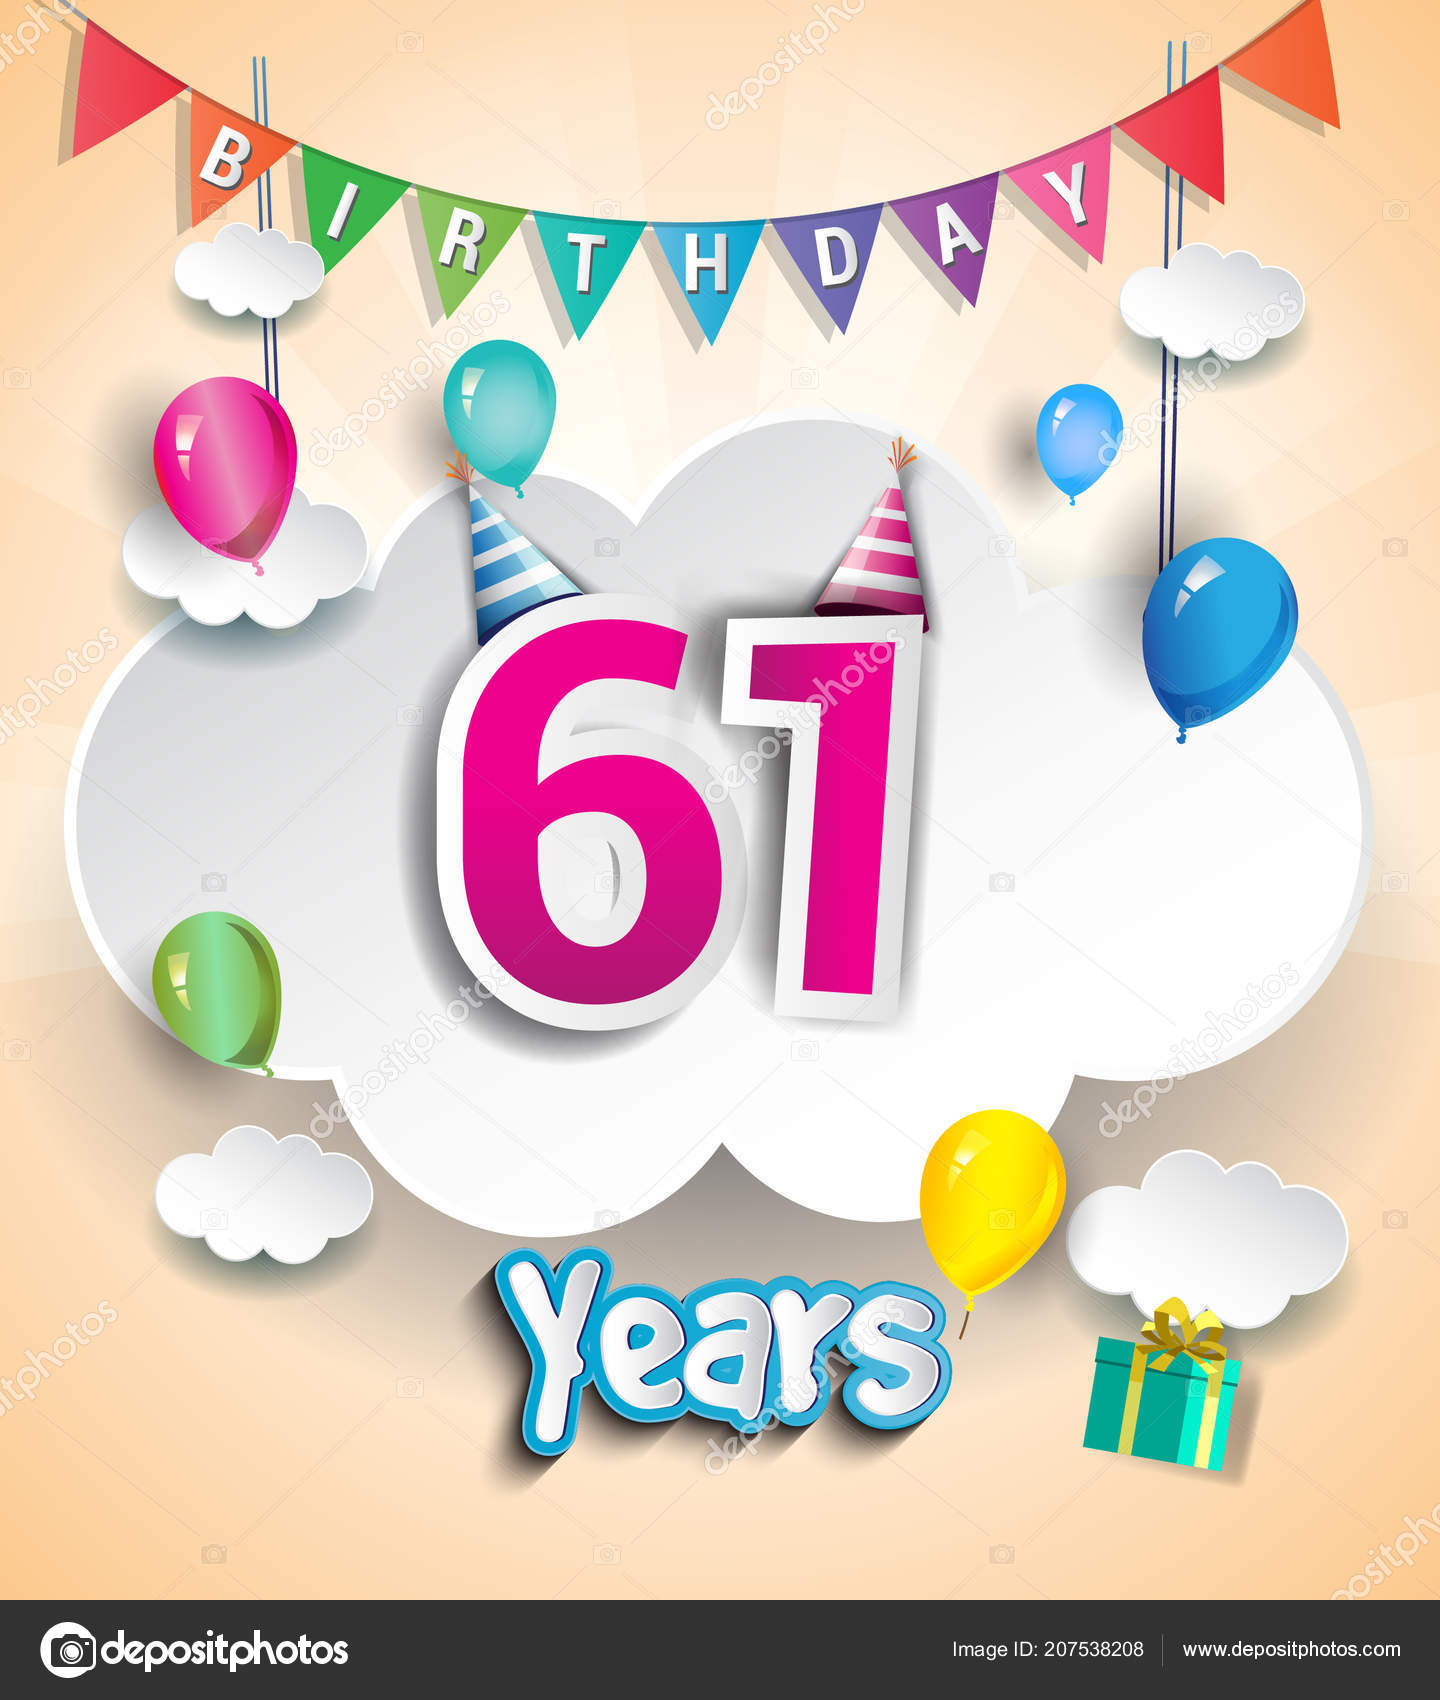 Years Birthday Design Greeting Cards Poster Cloud Balloons Using